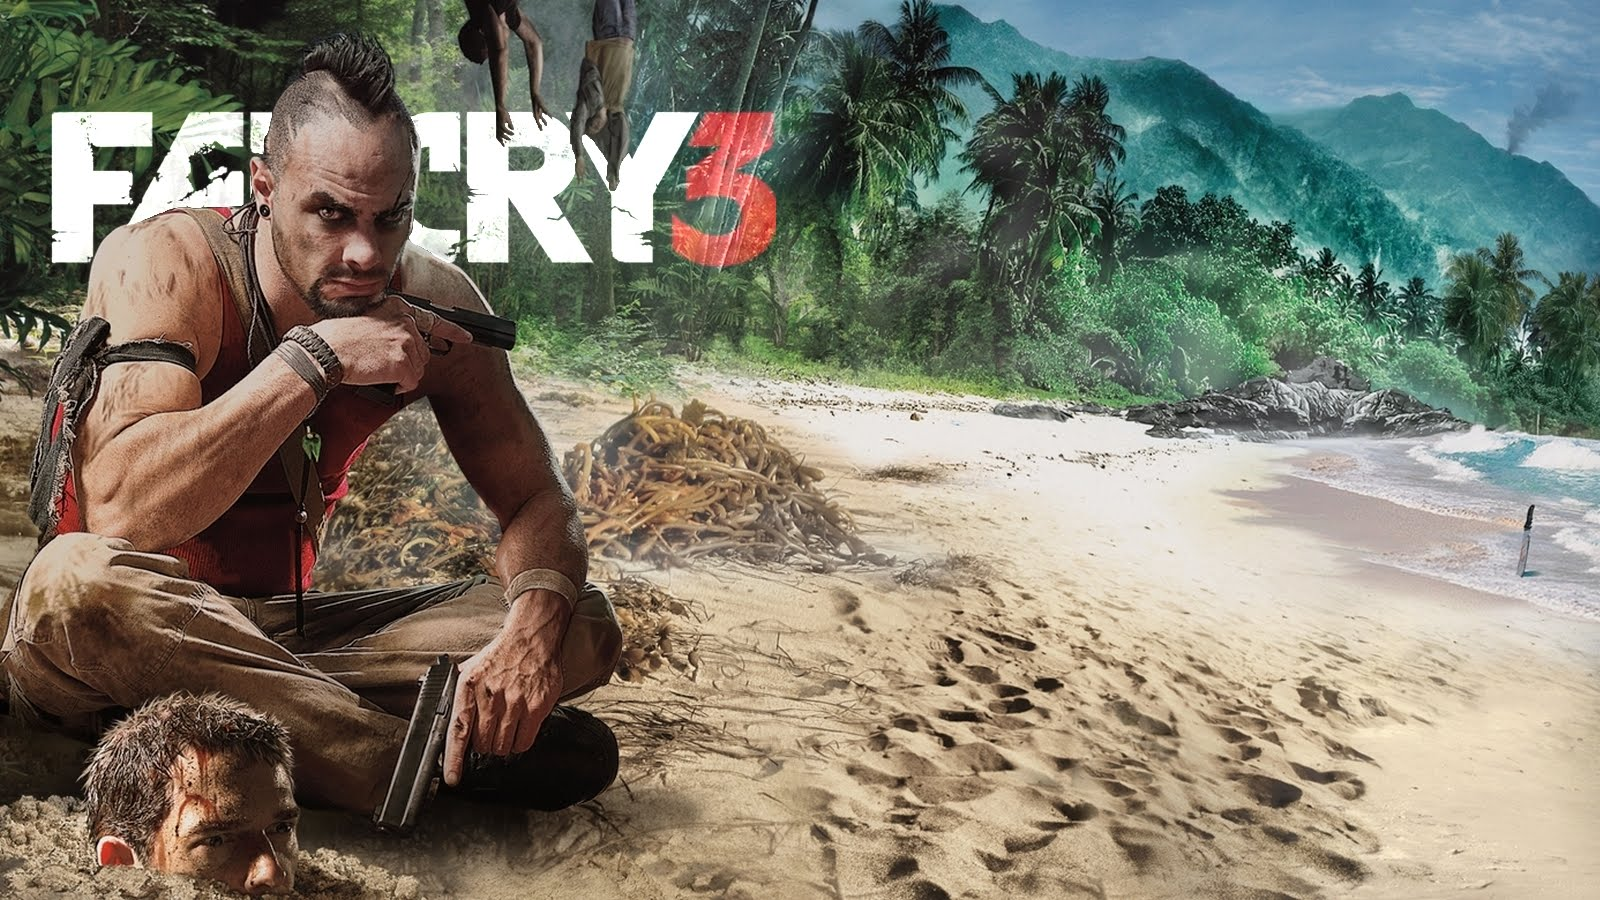 far cry 3 wallpaper hd 1600x900 images